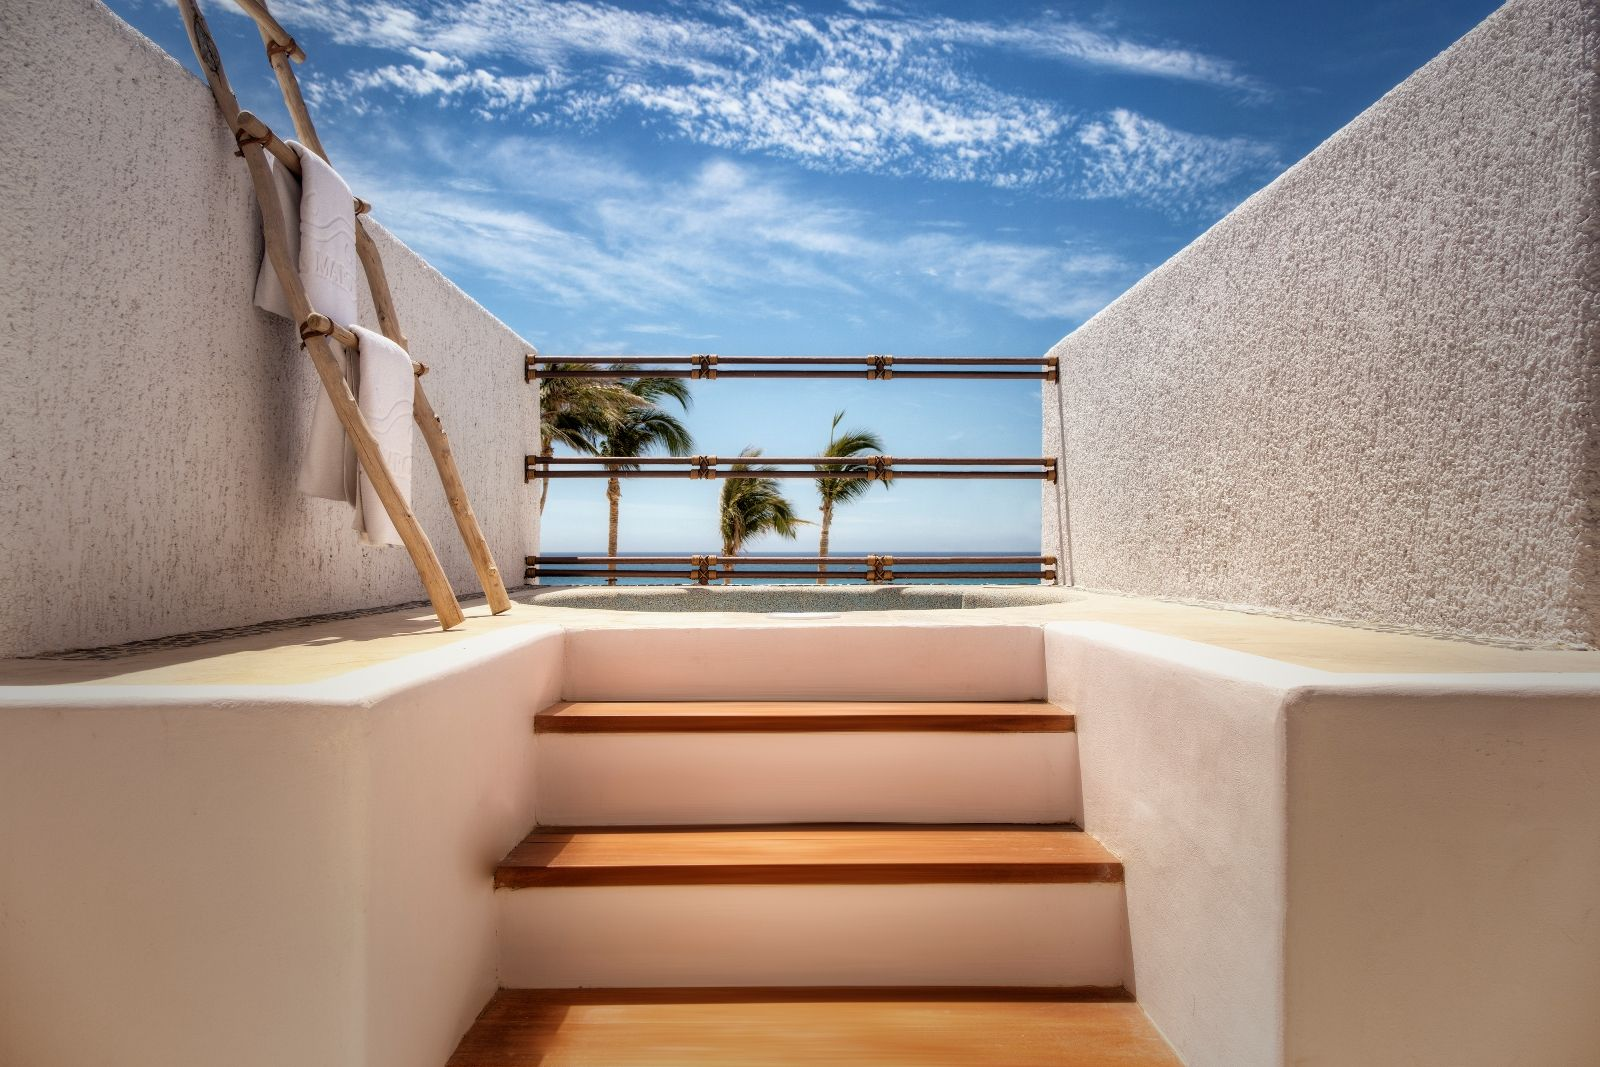 stairs leading to an ocean view